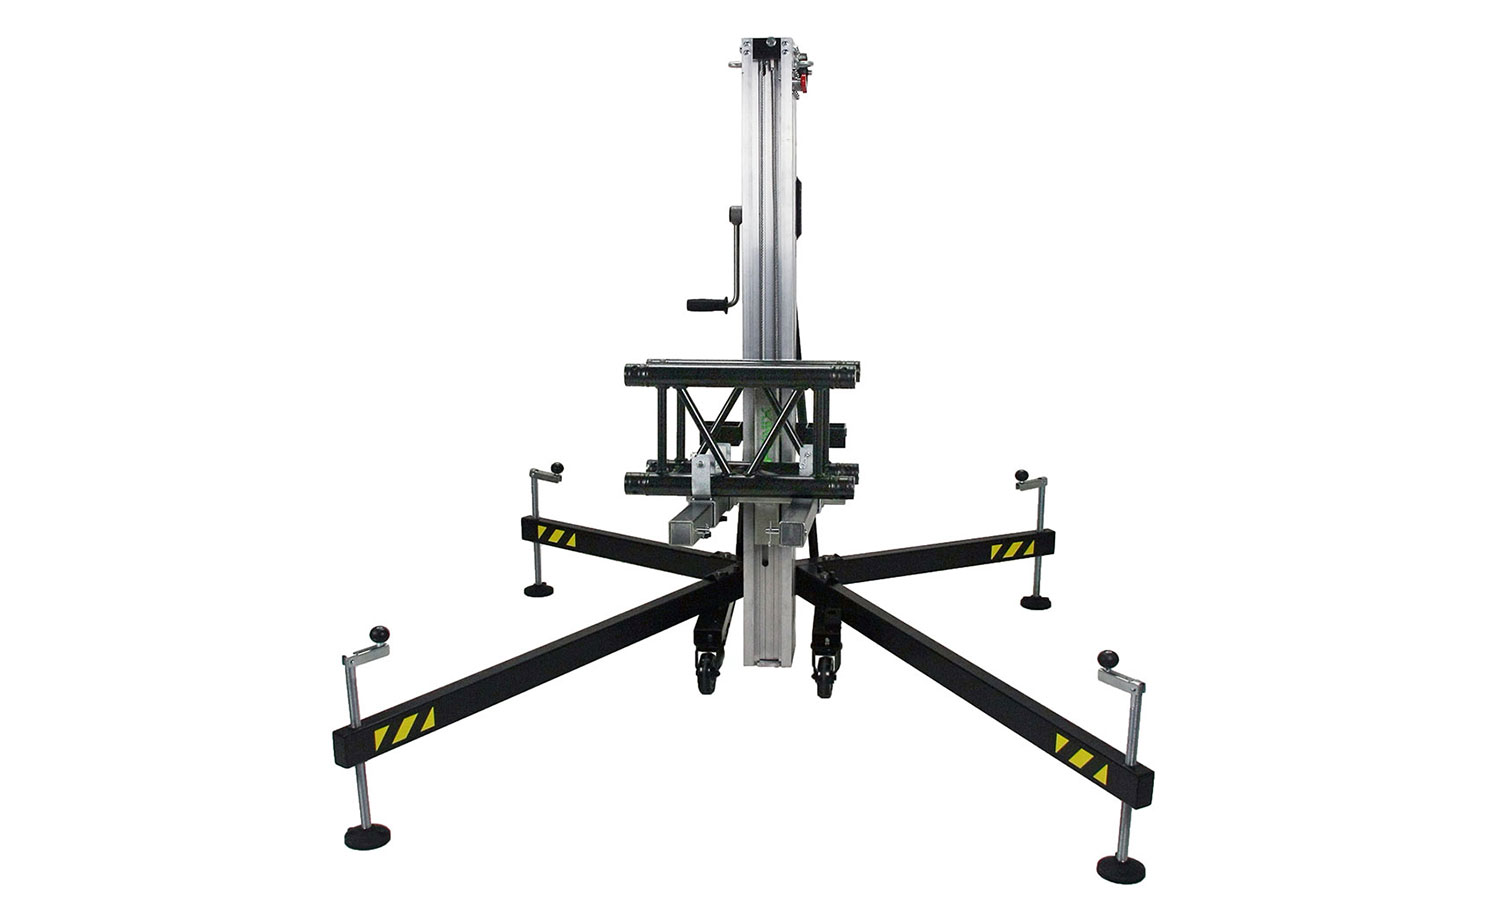 Fenix At 04 Compact Line Array Tower Truss Lifter Hire